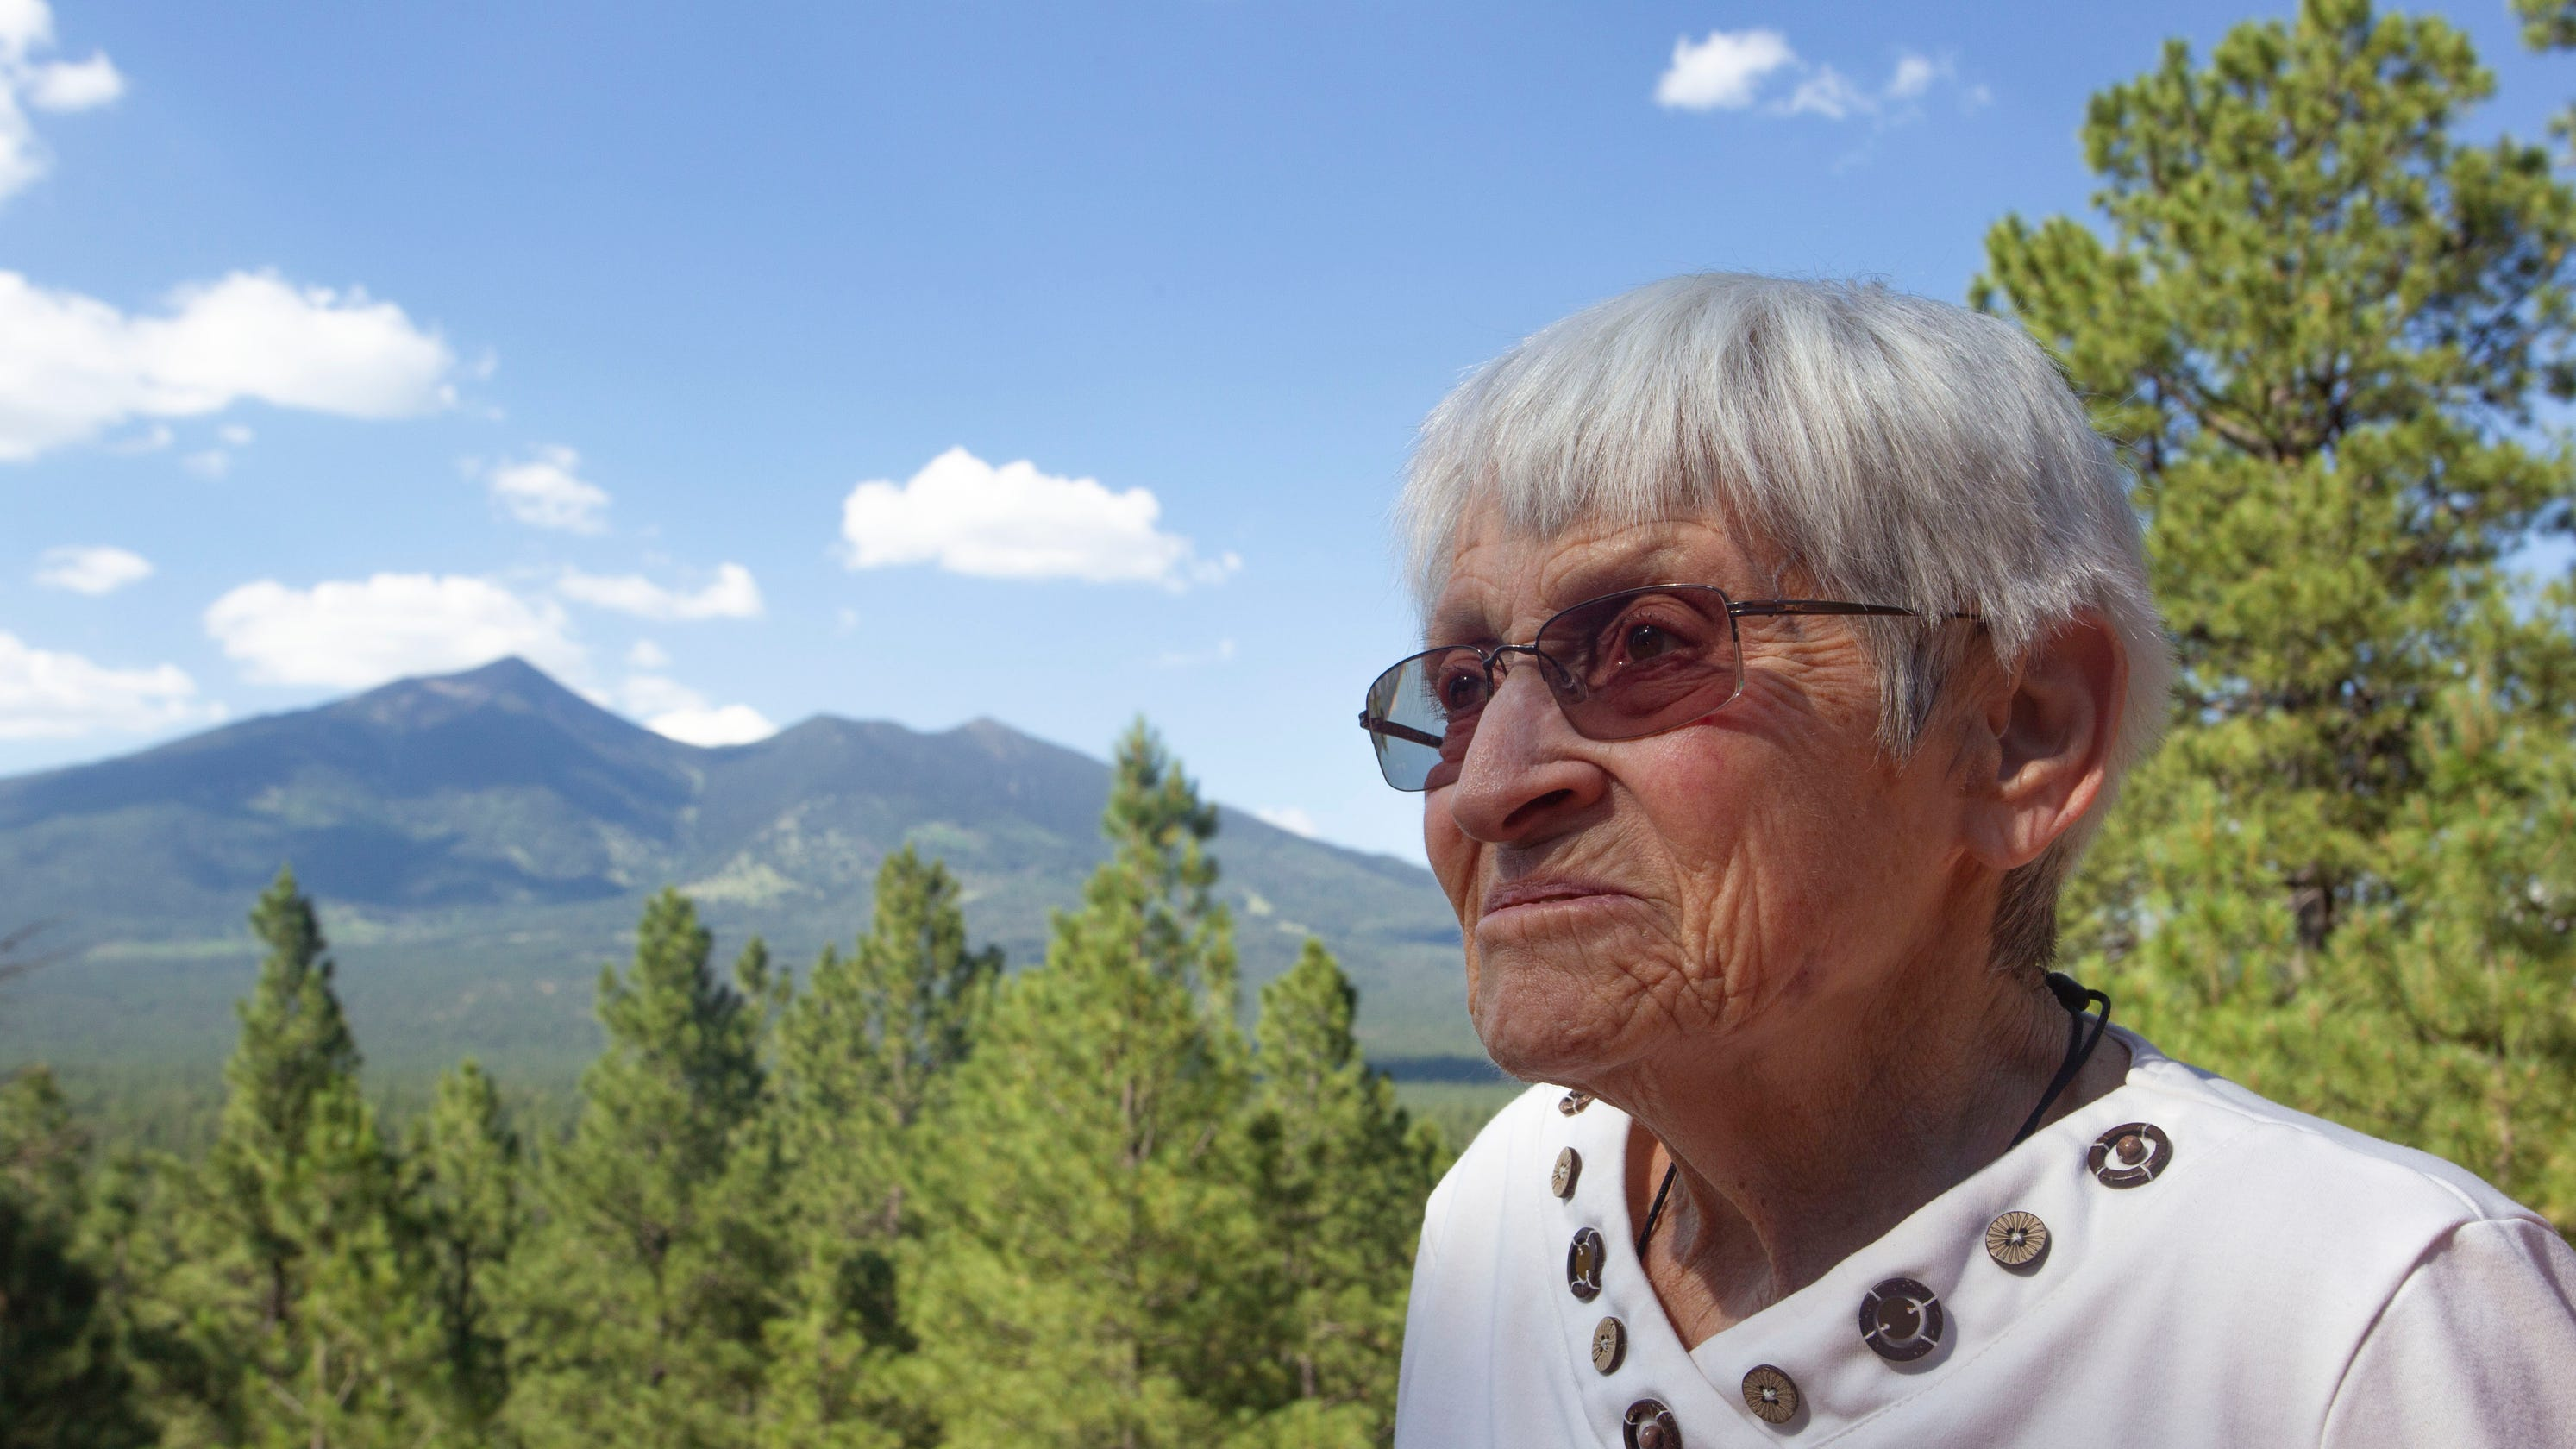 Carolyn Shoemaker has discovered 32 comets and more than 500 asteroids